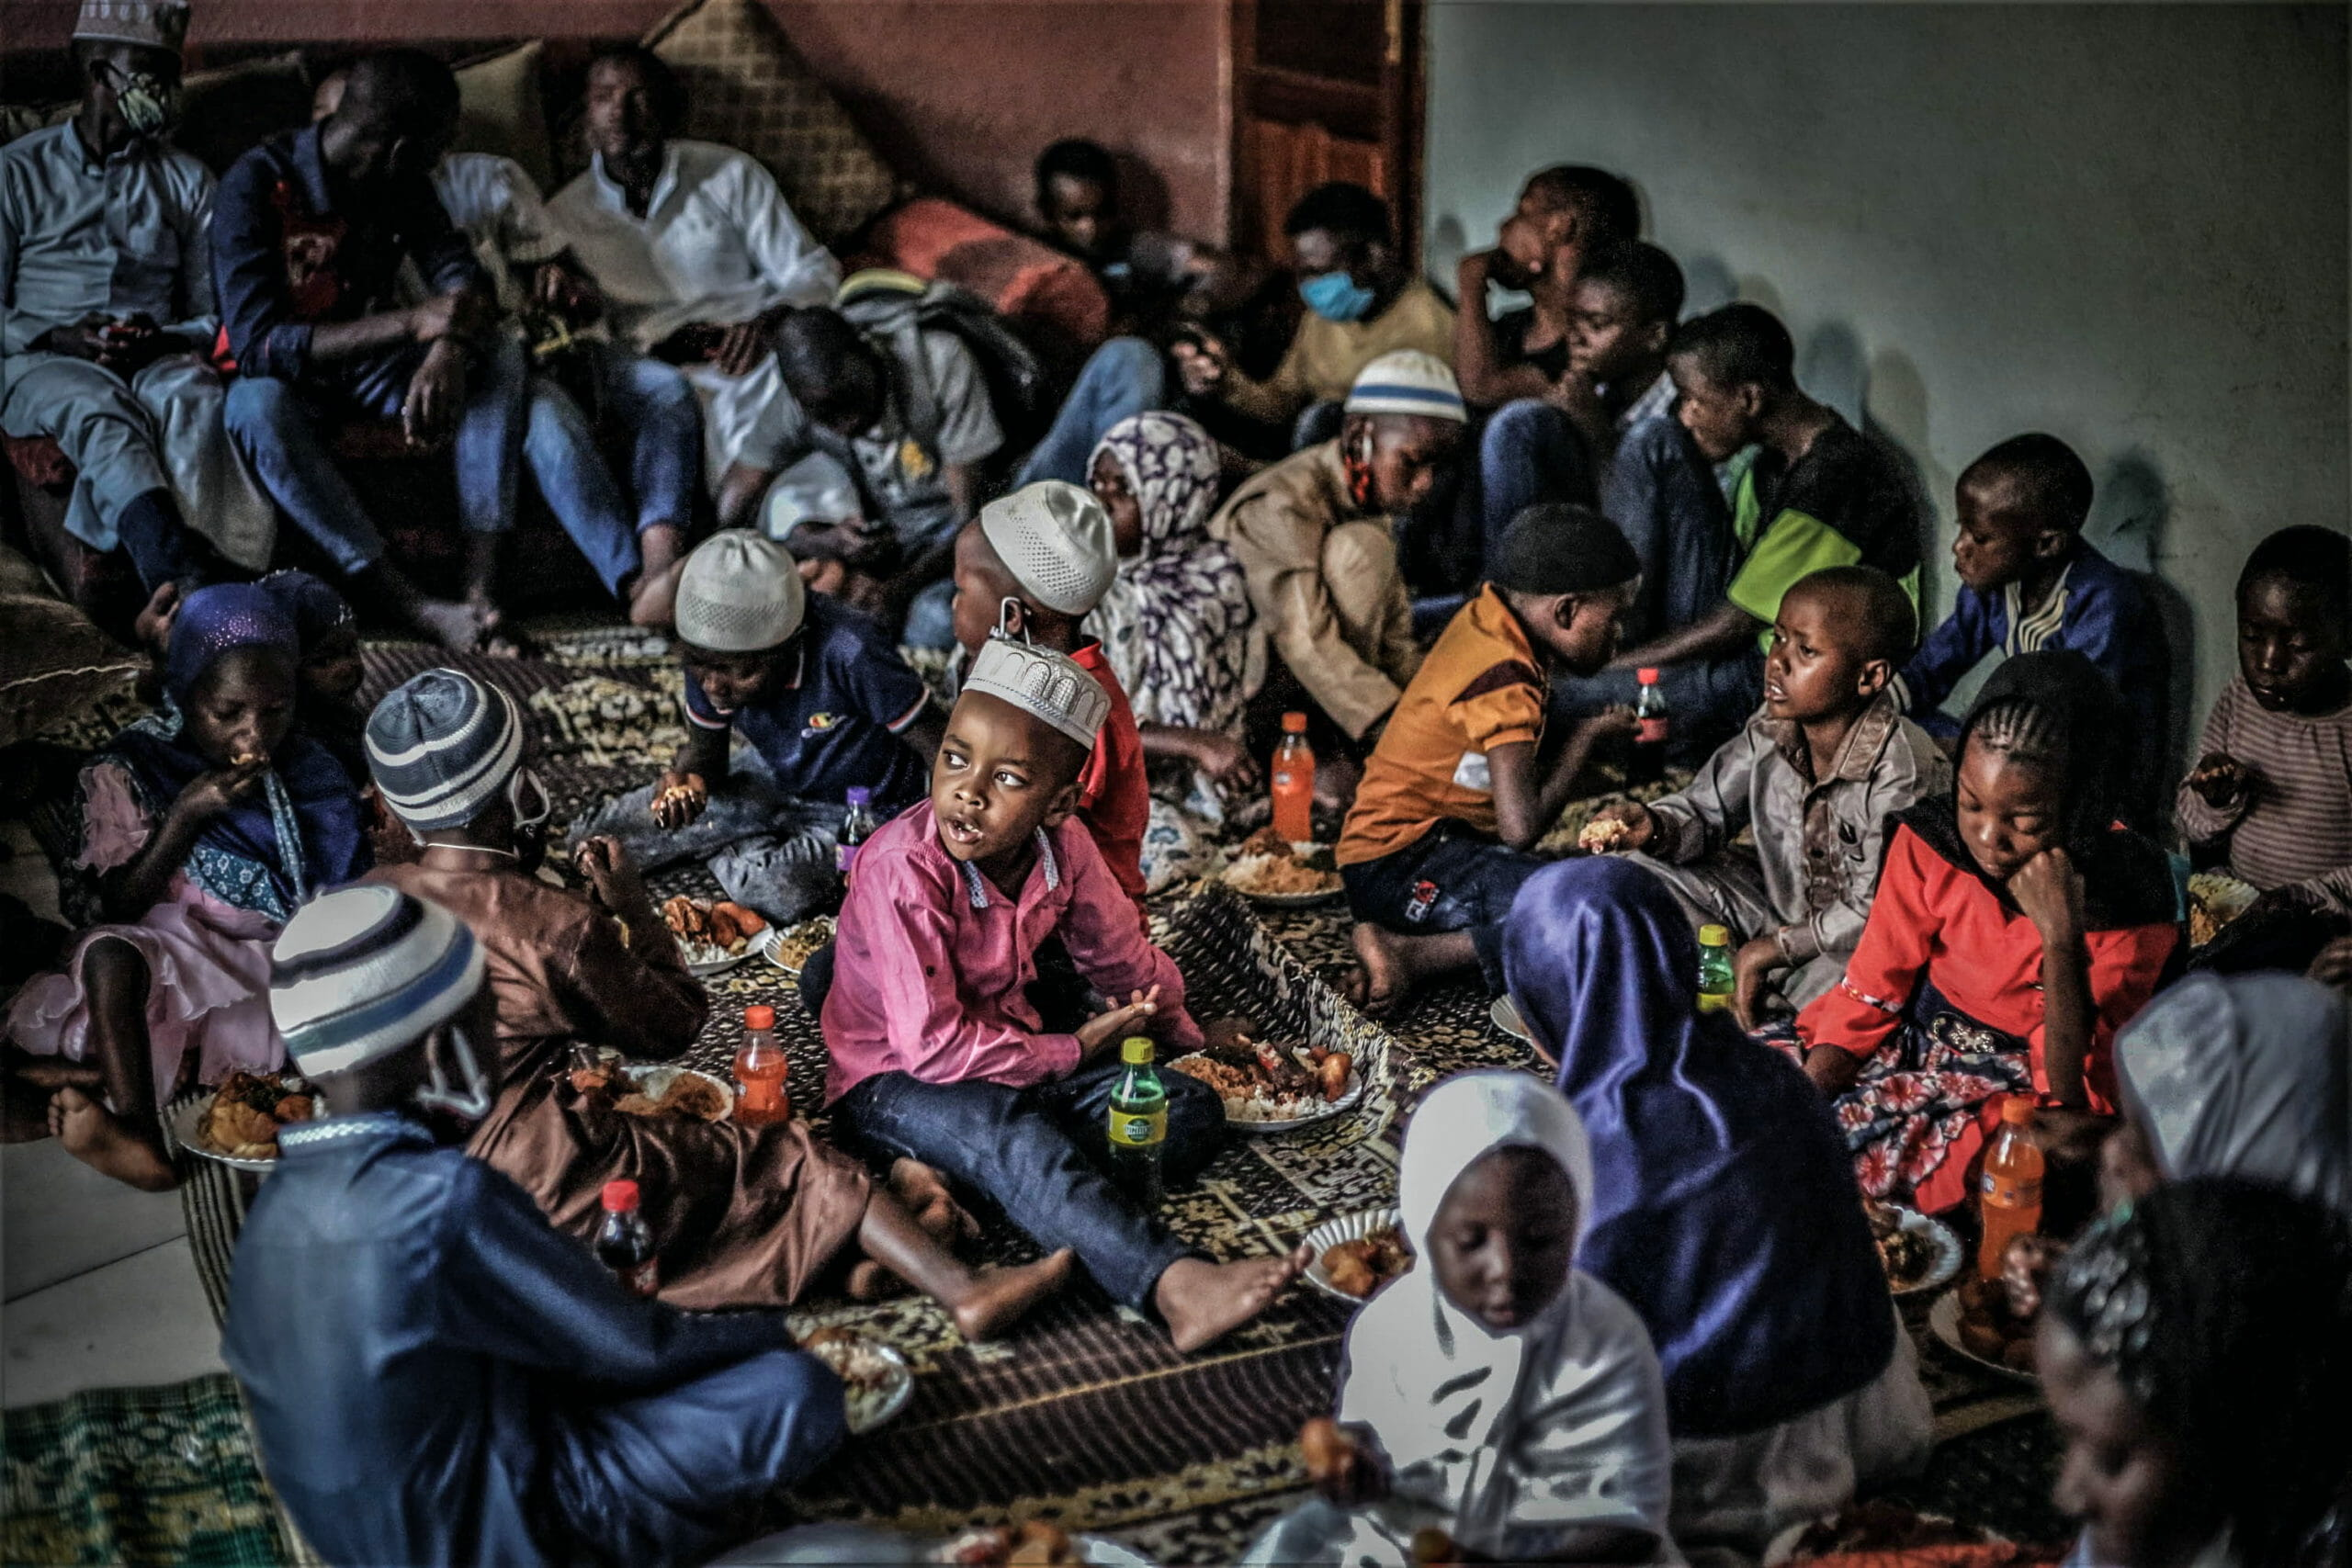 Goma, DRC, May 2020. Vulnerable children gather for a shared meal at a muslim community centre in Goma during Ramadan last week. © Ley Uwera for Fondation Carmignac